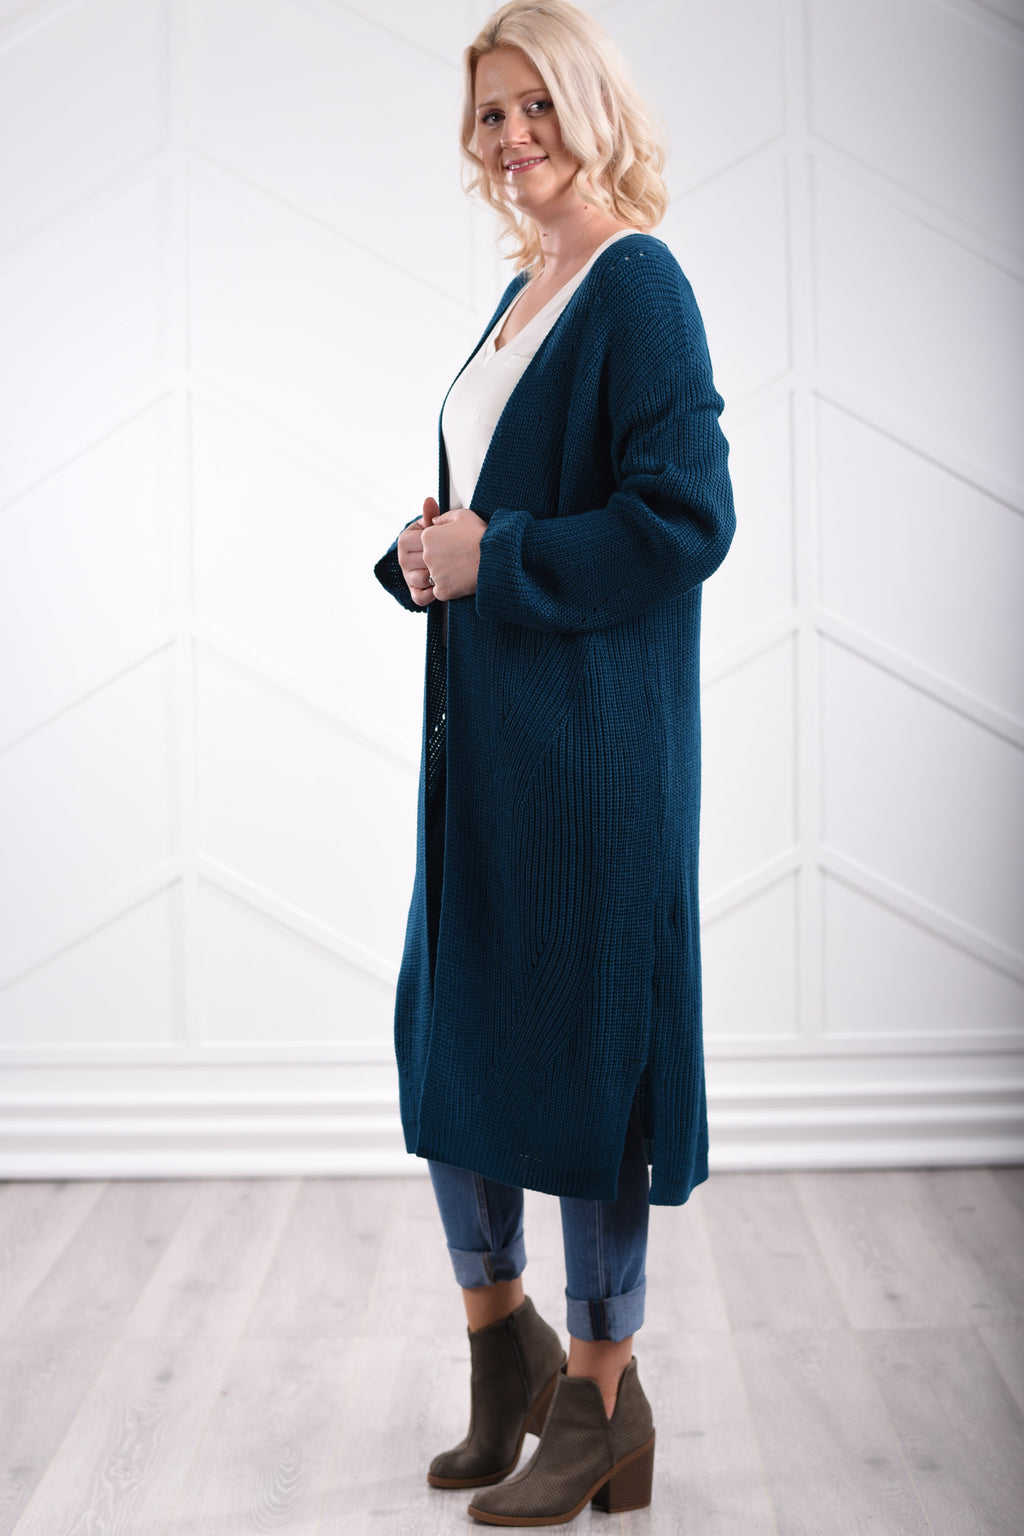 Maisie Cardigan - women's boutique clothing Strong Confident You